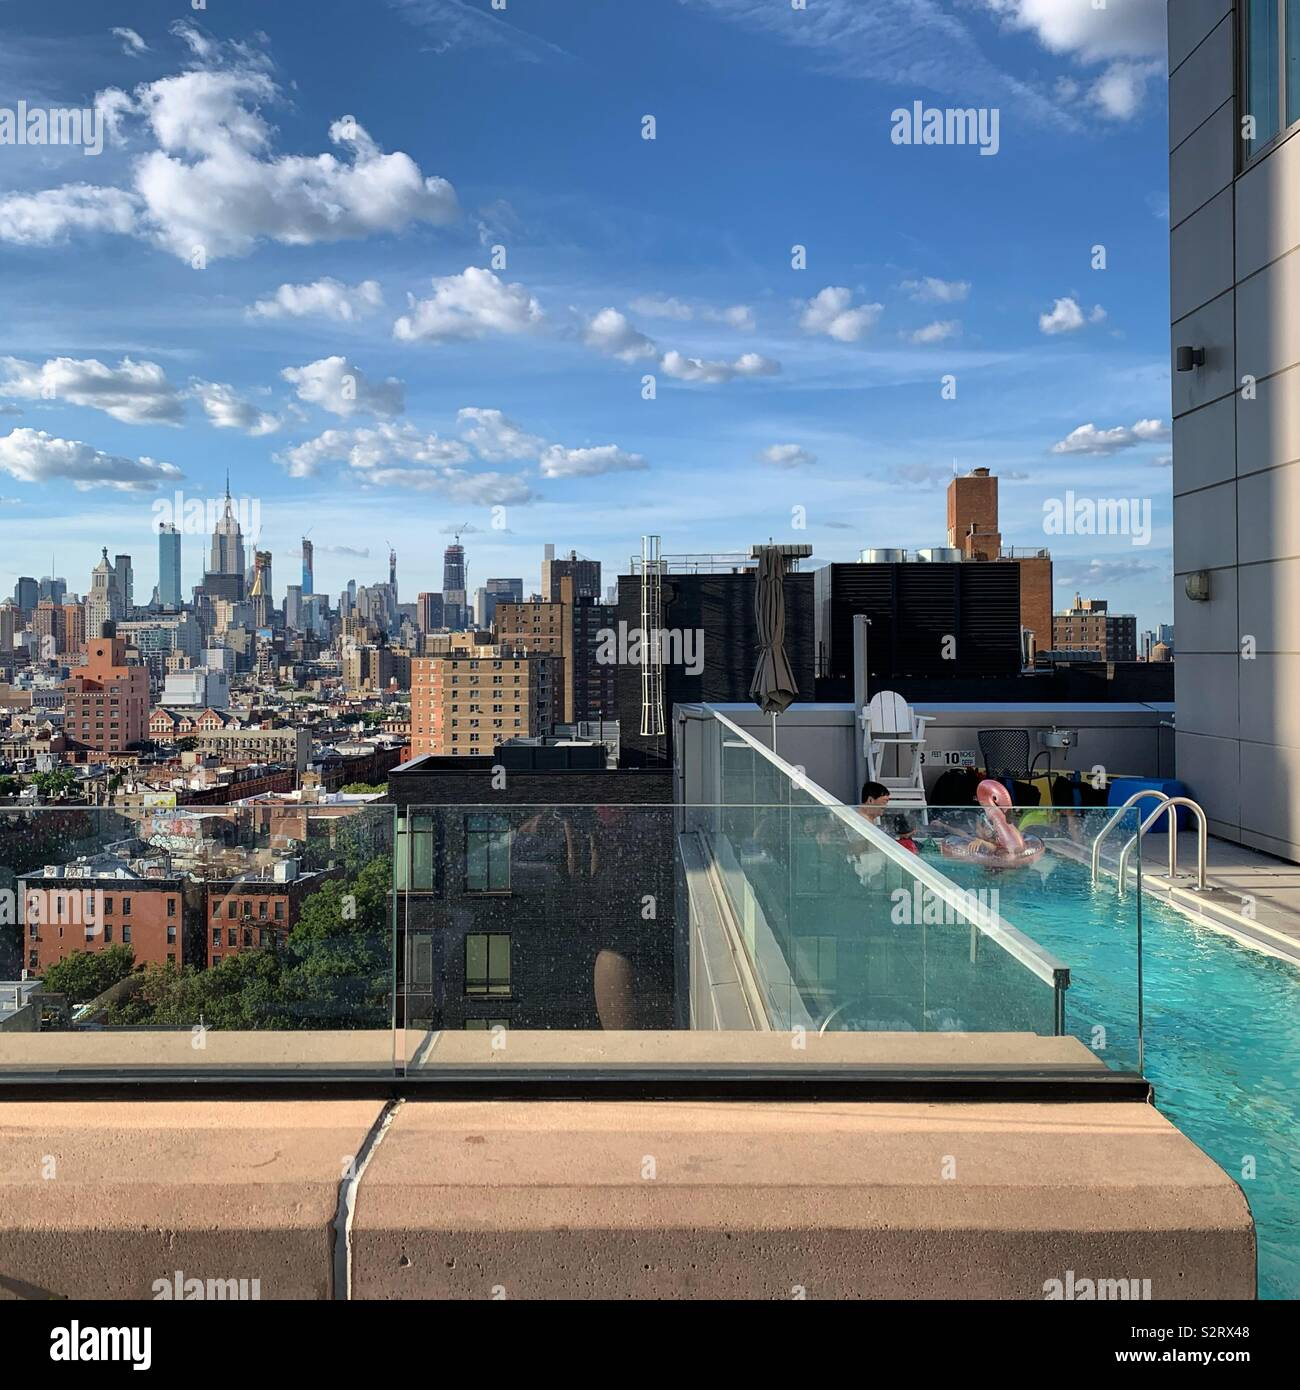 Looking out at the view from beside the pool at the Hotel Indigo Lower East Side, New York City - Stock Image